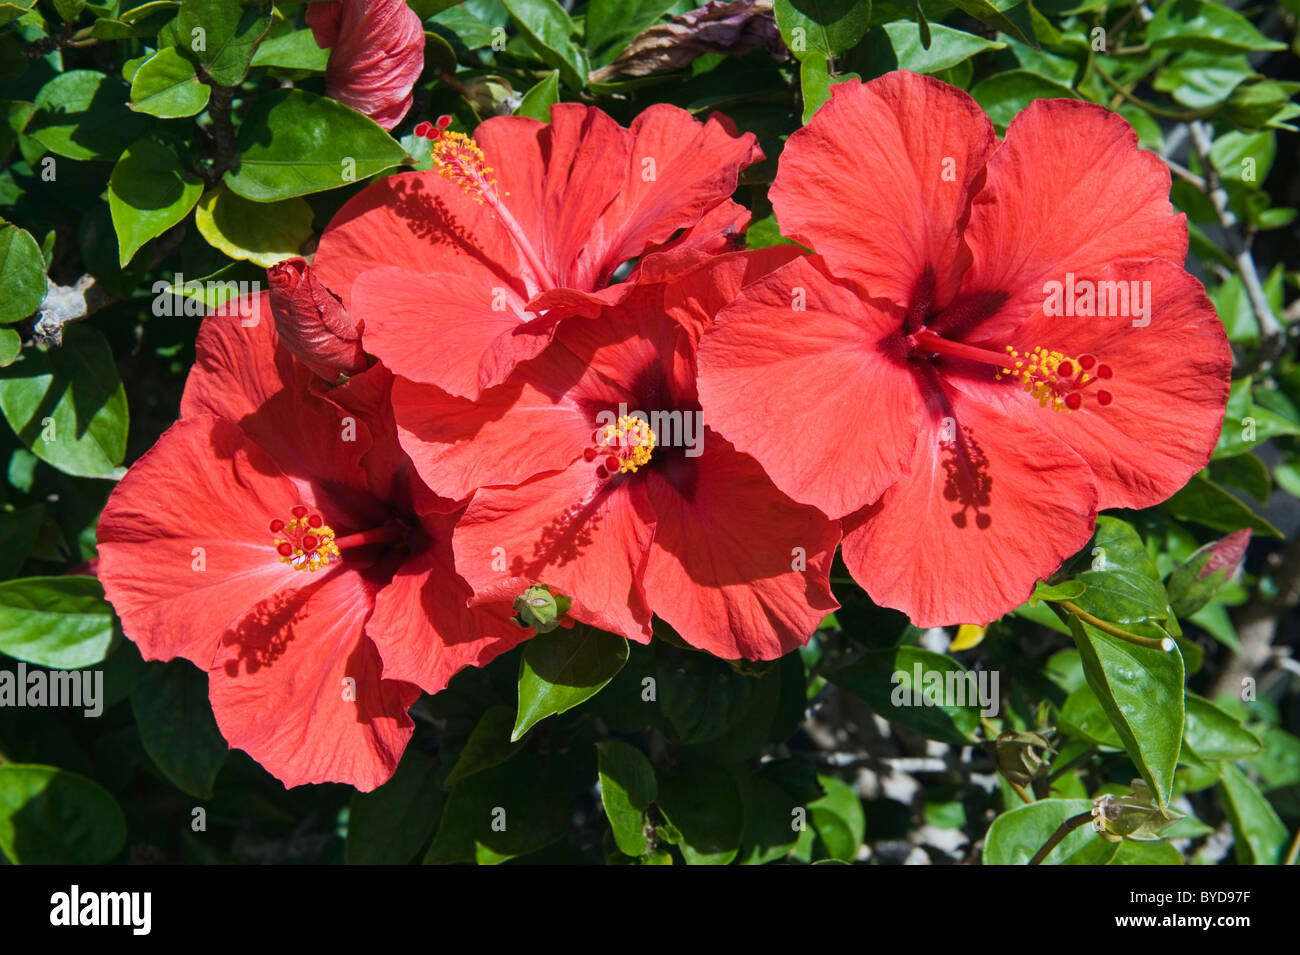 Red hibiscus flowers hibiscus lanzarote canary islands spain red hibiscus flowers hibiscus lanzarote canary islands spain europe izmirmasajfo